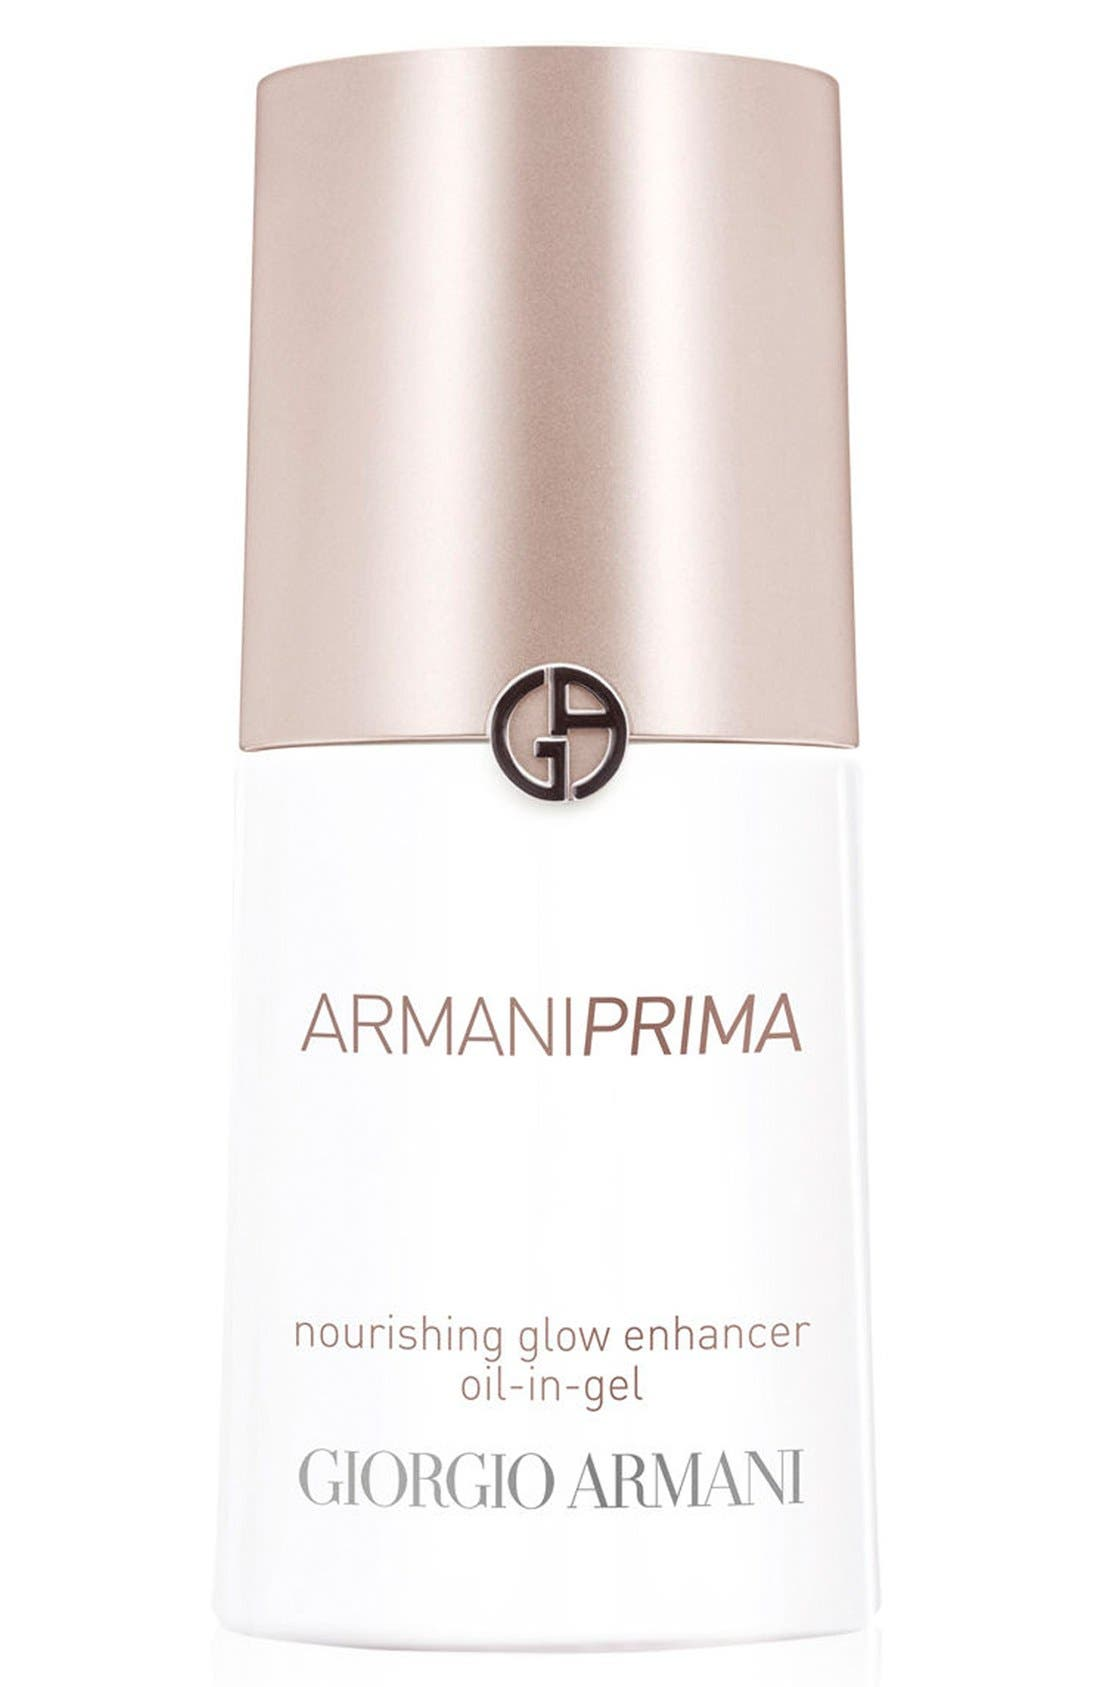 'Prima' Nourishing Glow Enhancer Oil-in-Gel,                             Main thumbnail 1, color,                             NO COLOR